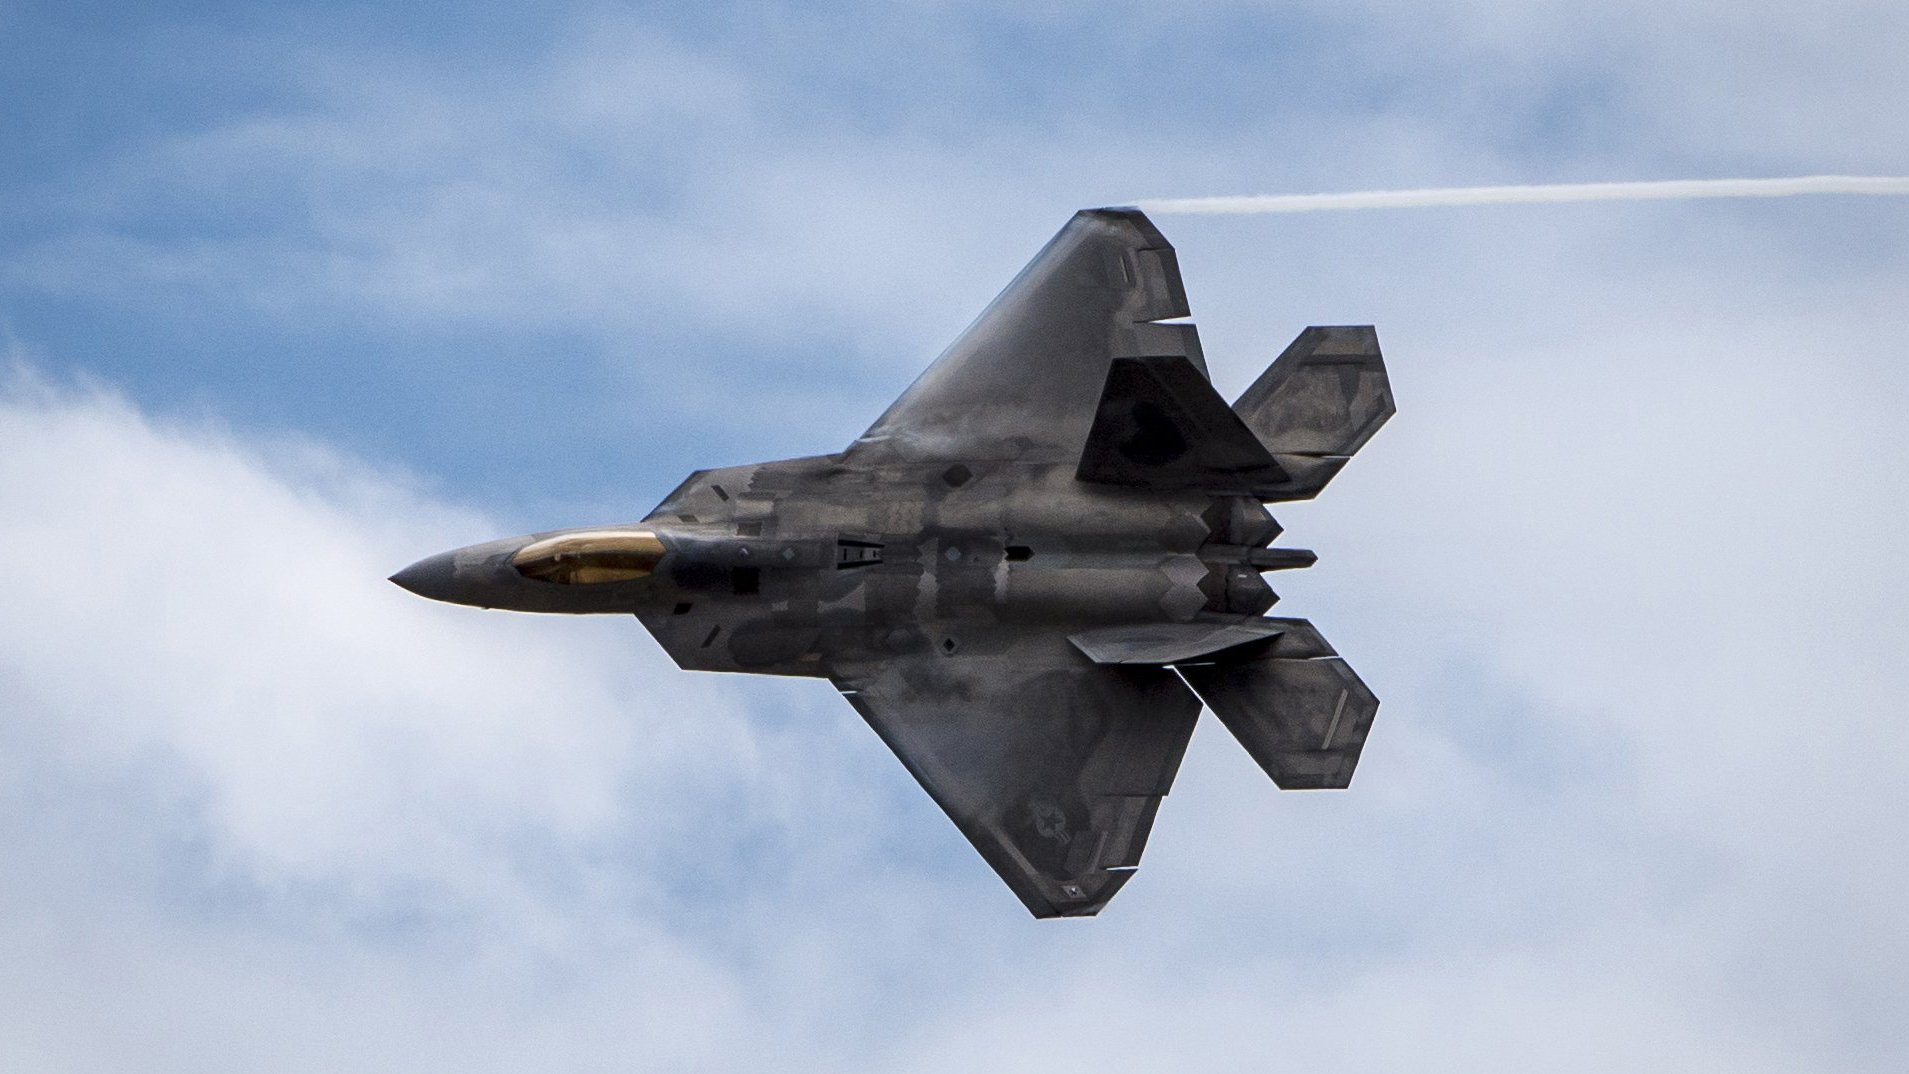 Pioneer African American Air Force F 22 Raptor Pilot Aims To Inspire